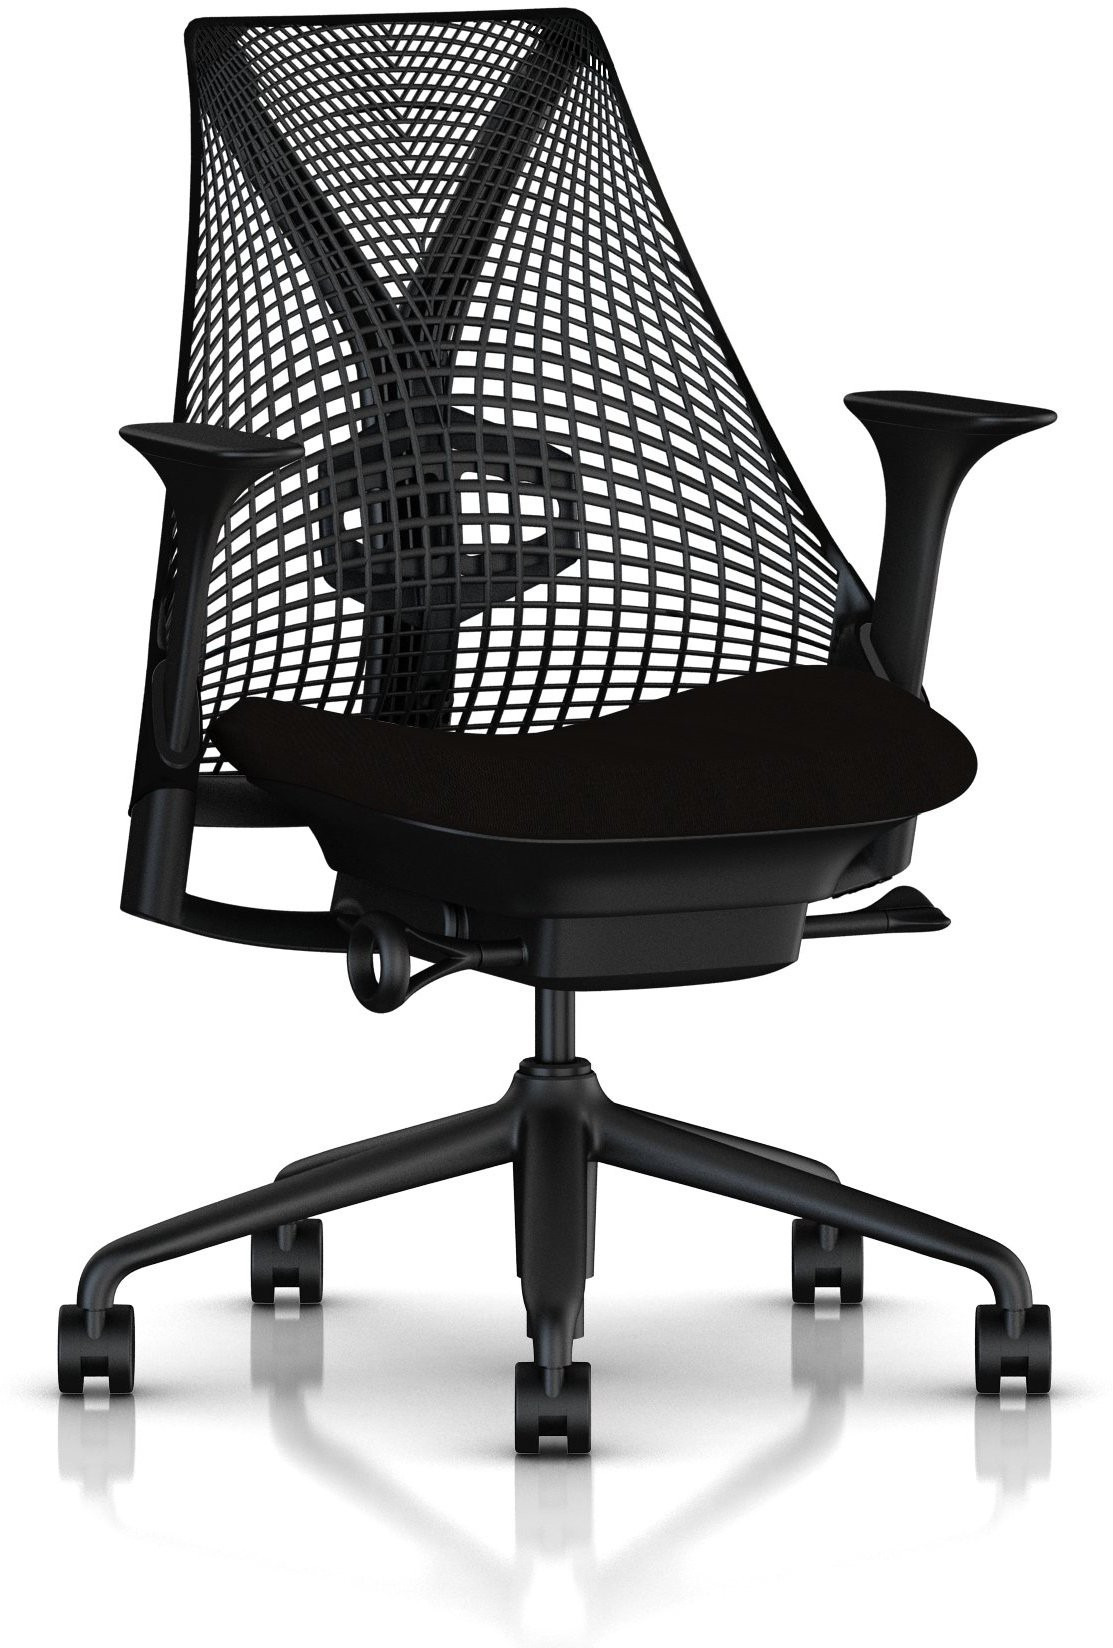 View HermanMiller Sayl with Height adjustable arms : 3D Elastomer Strands NA Office Chair(Black) Furniture (HermanMiller)